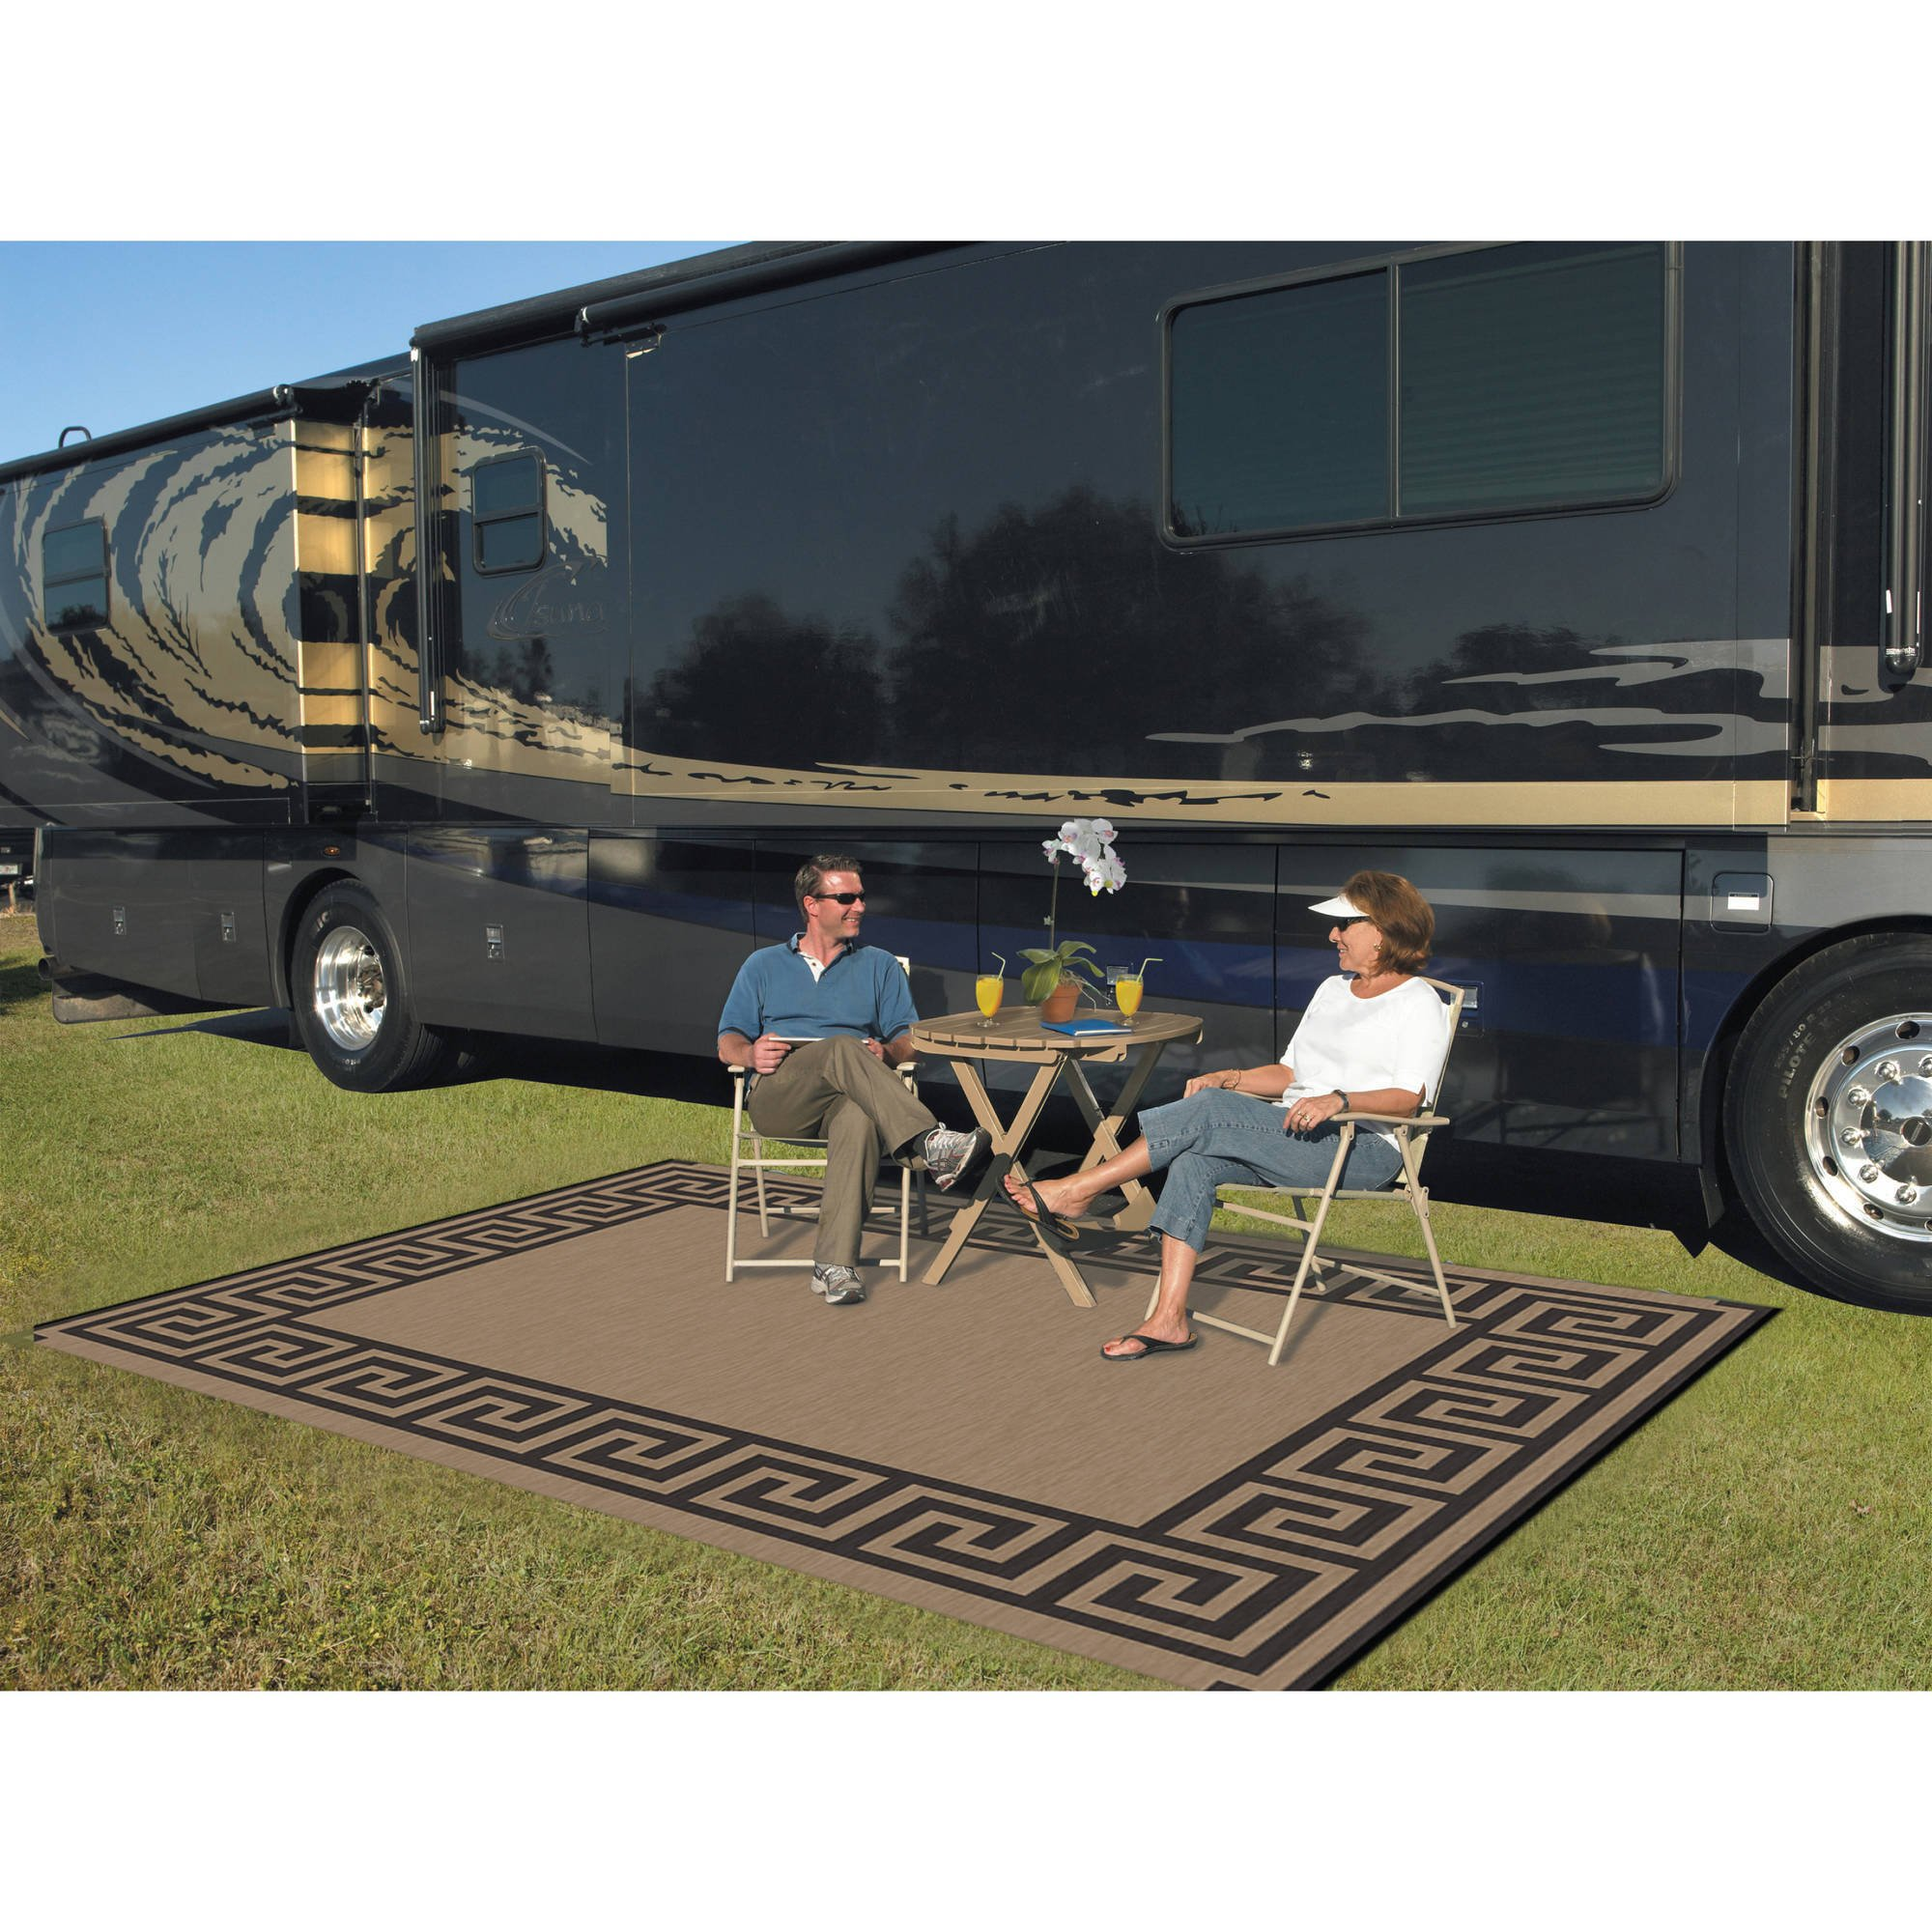 Patio Mats 9' x 12' Reversible RV Patio Mat, Indoor/Outdoor Rug, Camping Mat